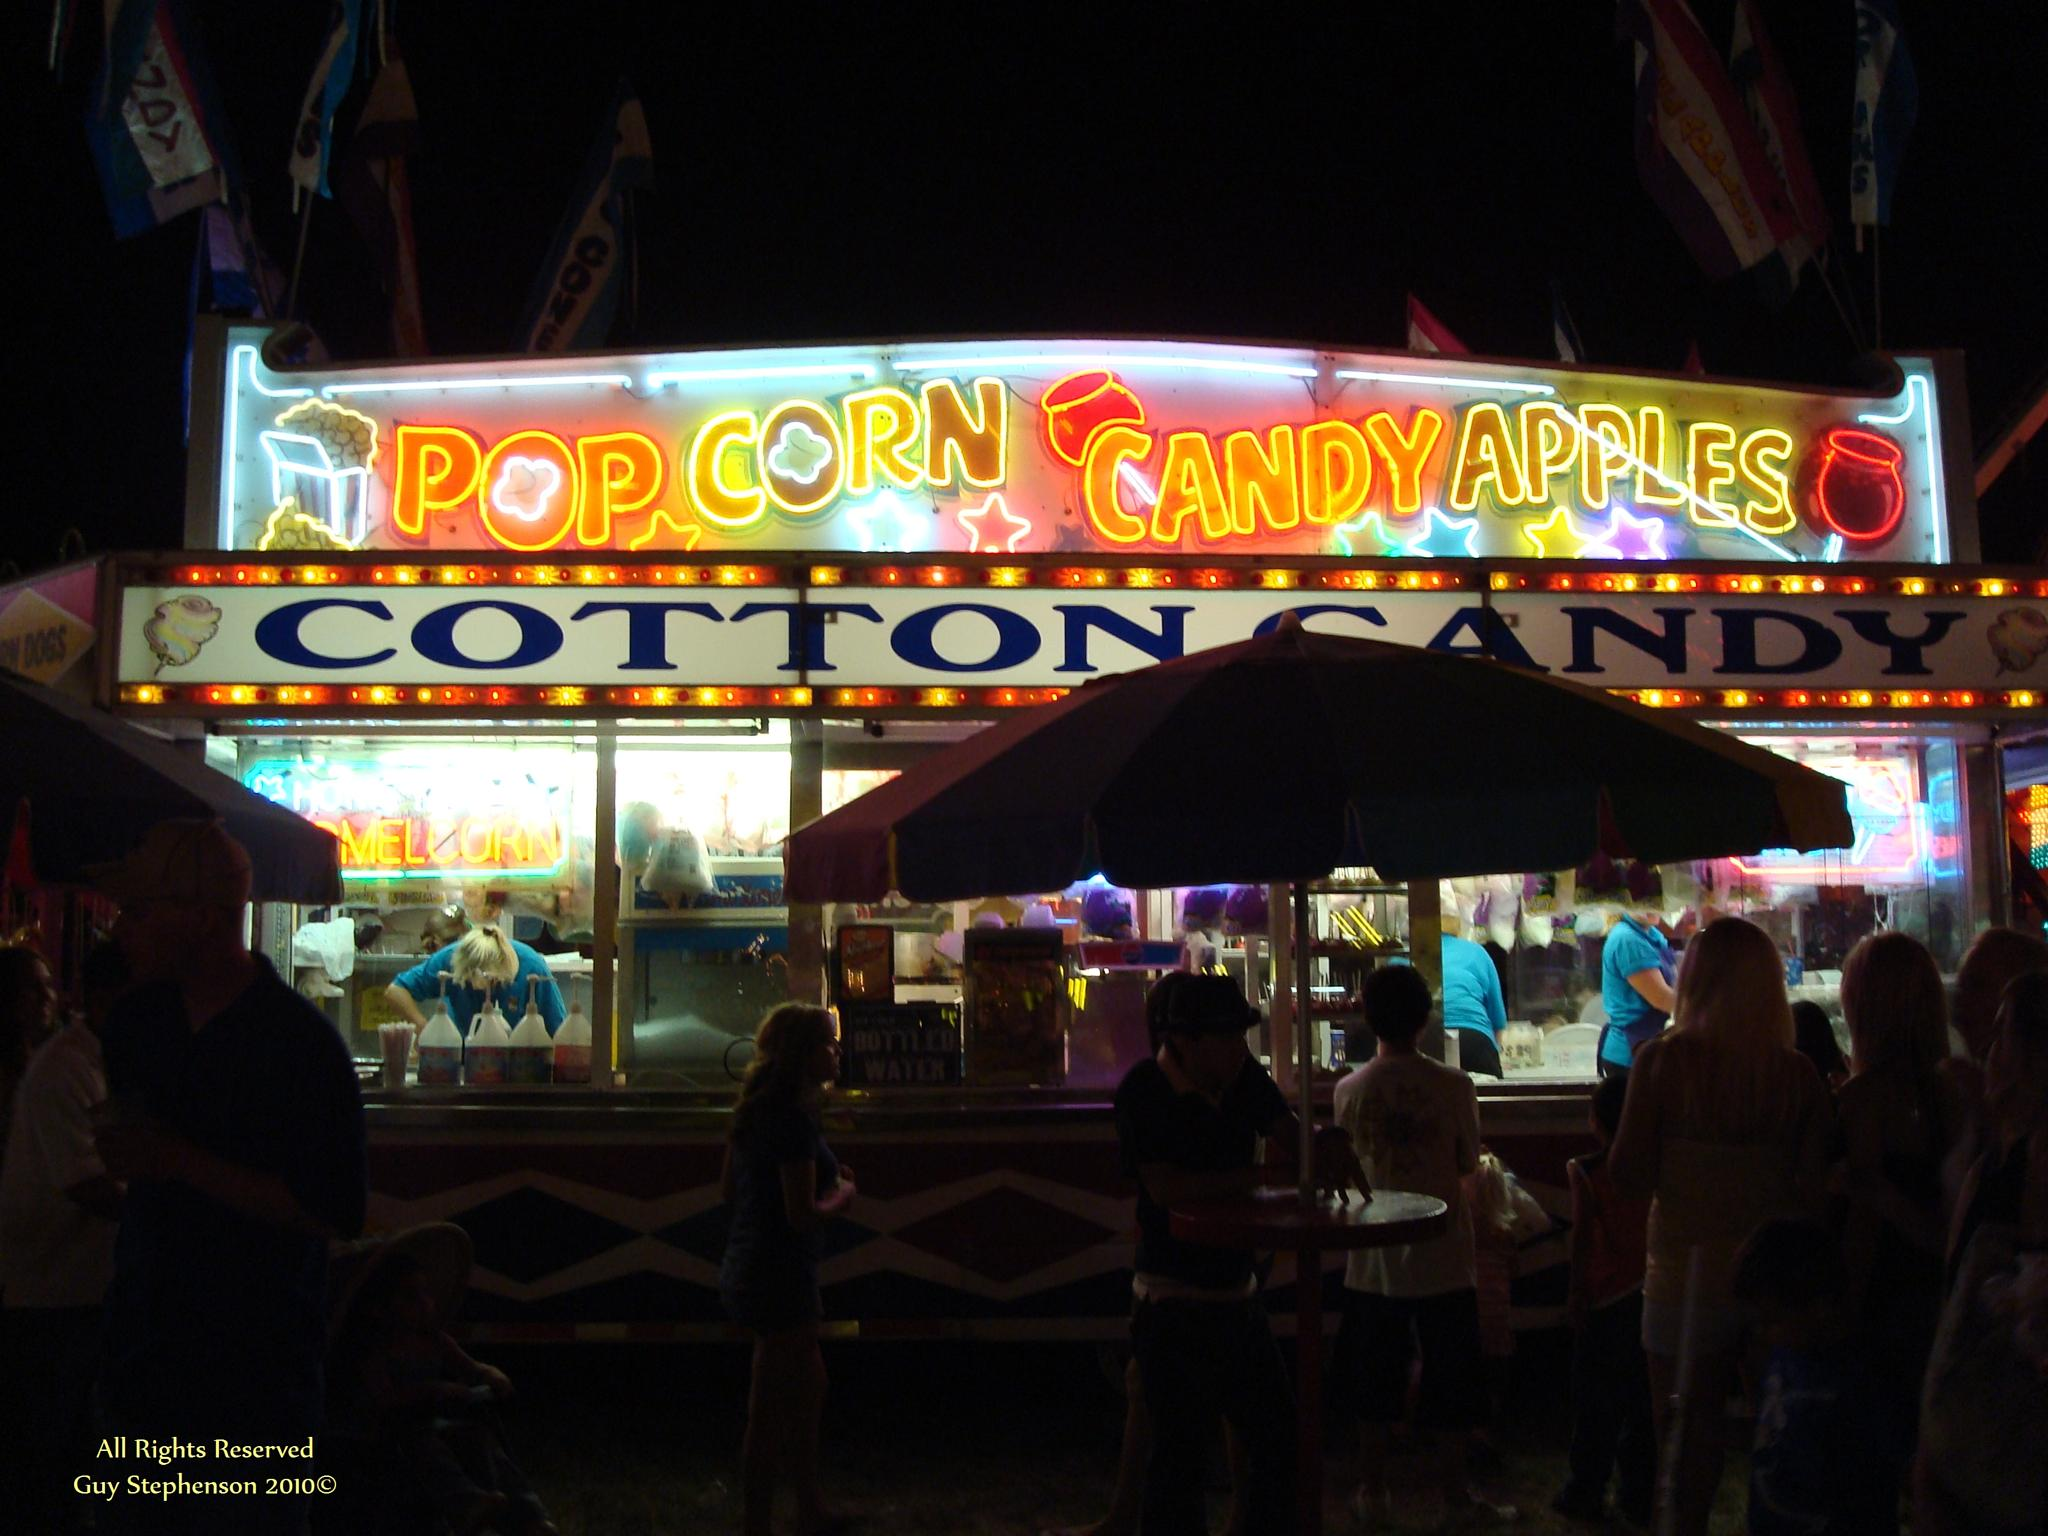 Night at the Fair - Popcorn and Candy Apples! by Guy Stephenson